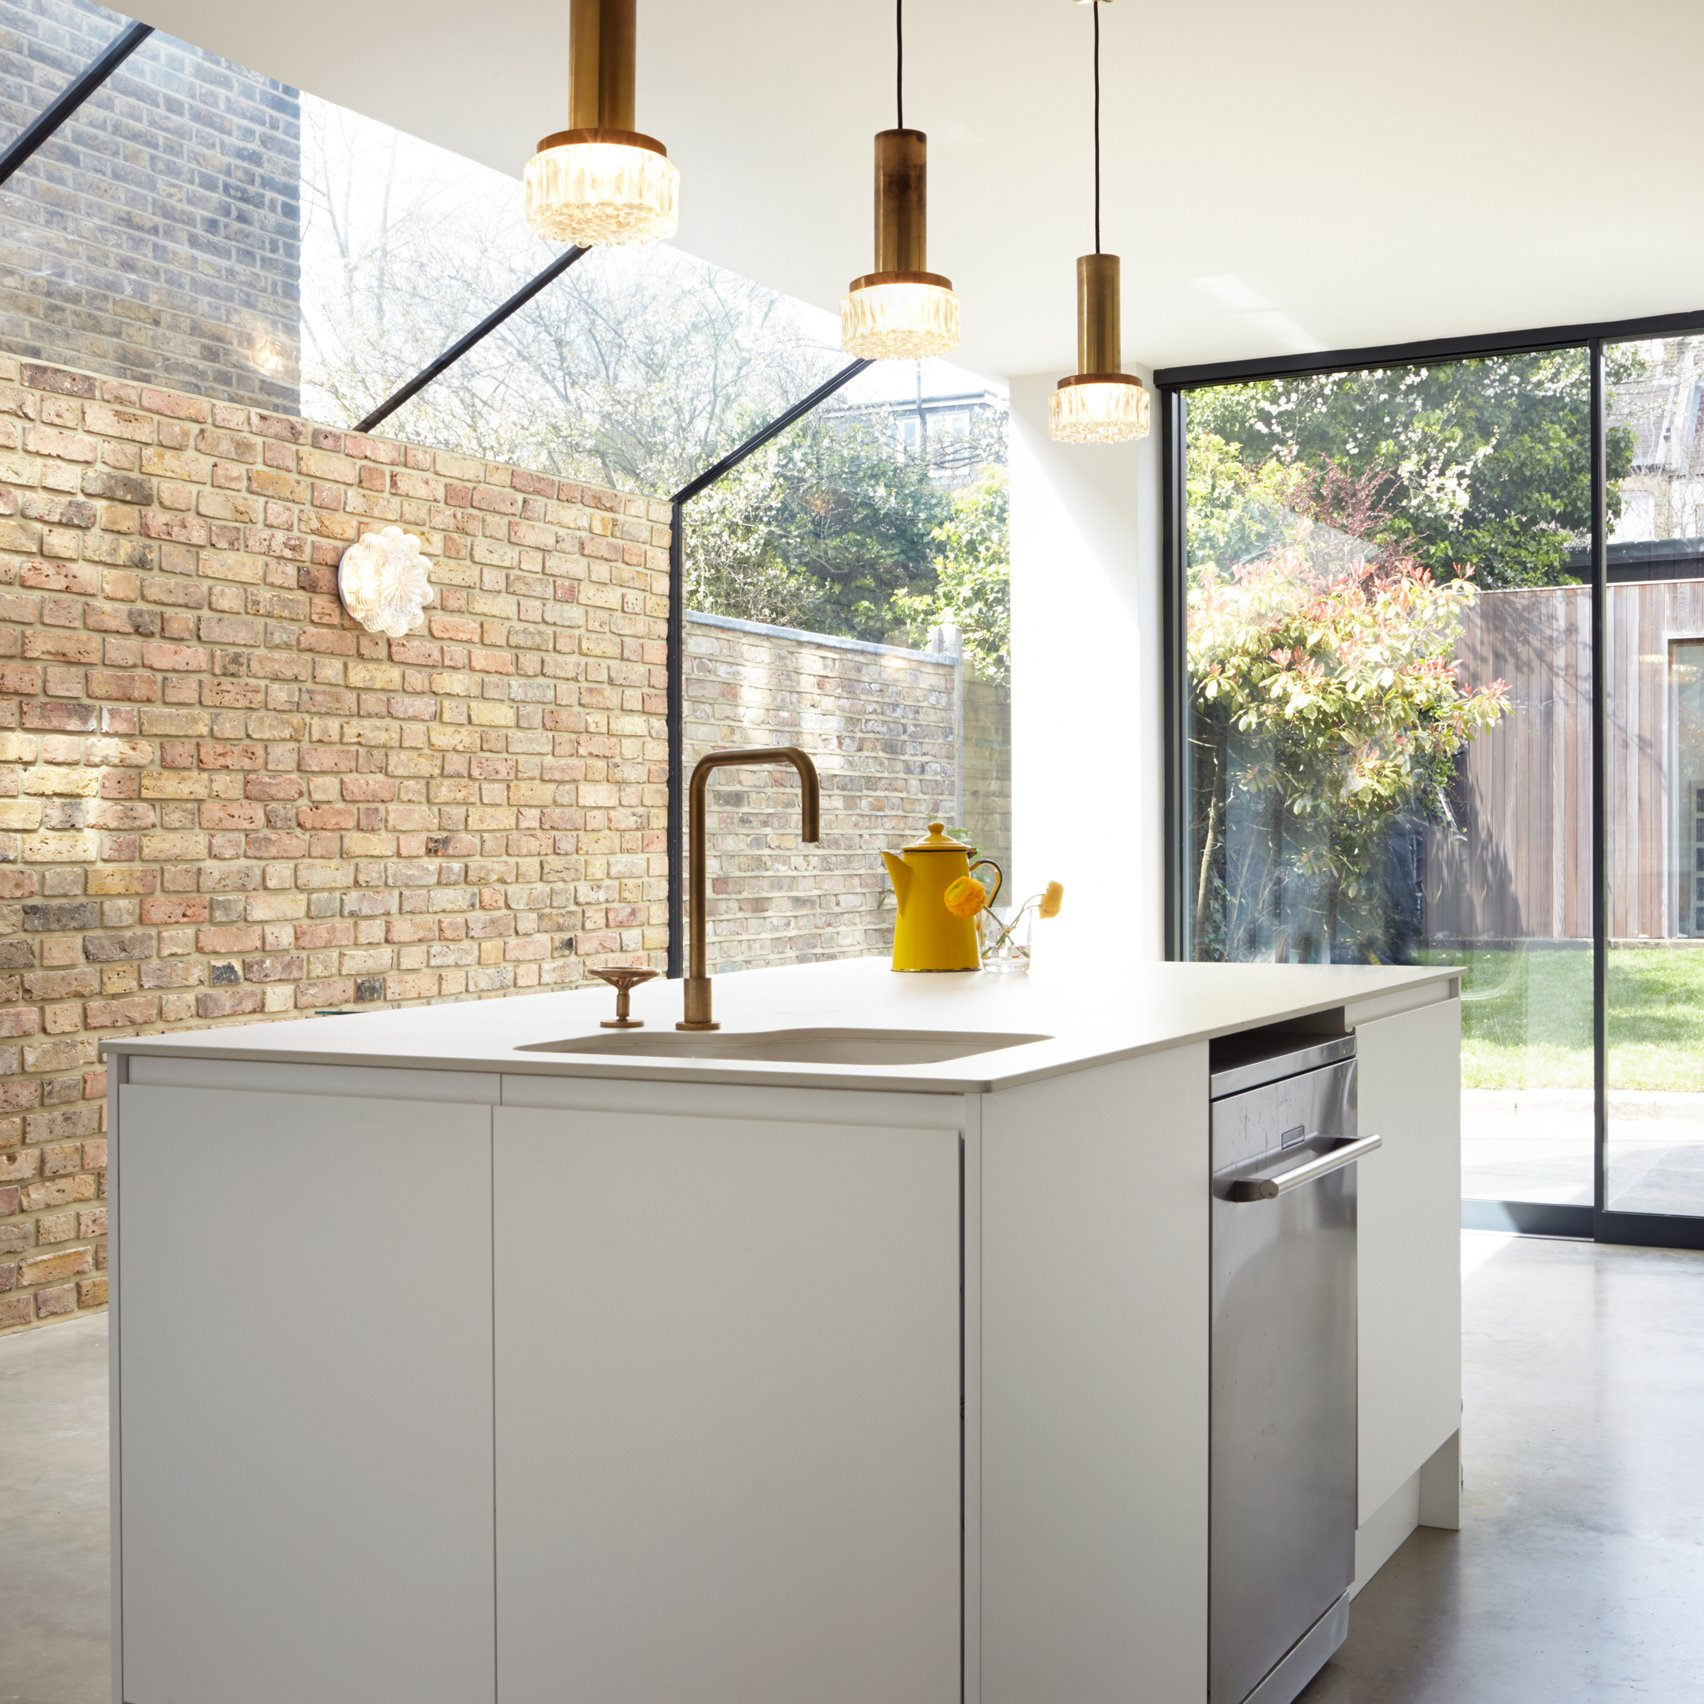 10 Of The Best London House Extensions From Dezeen's